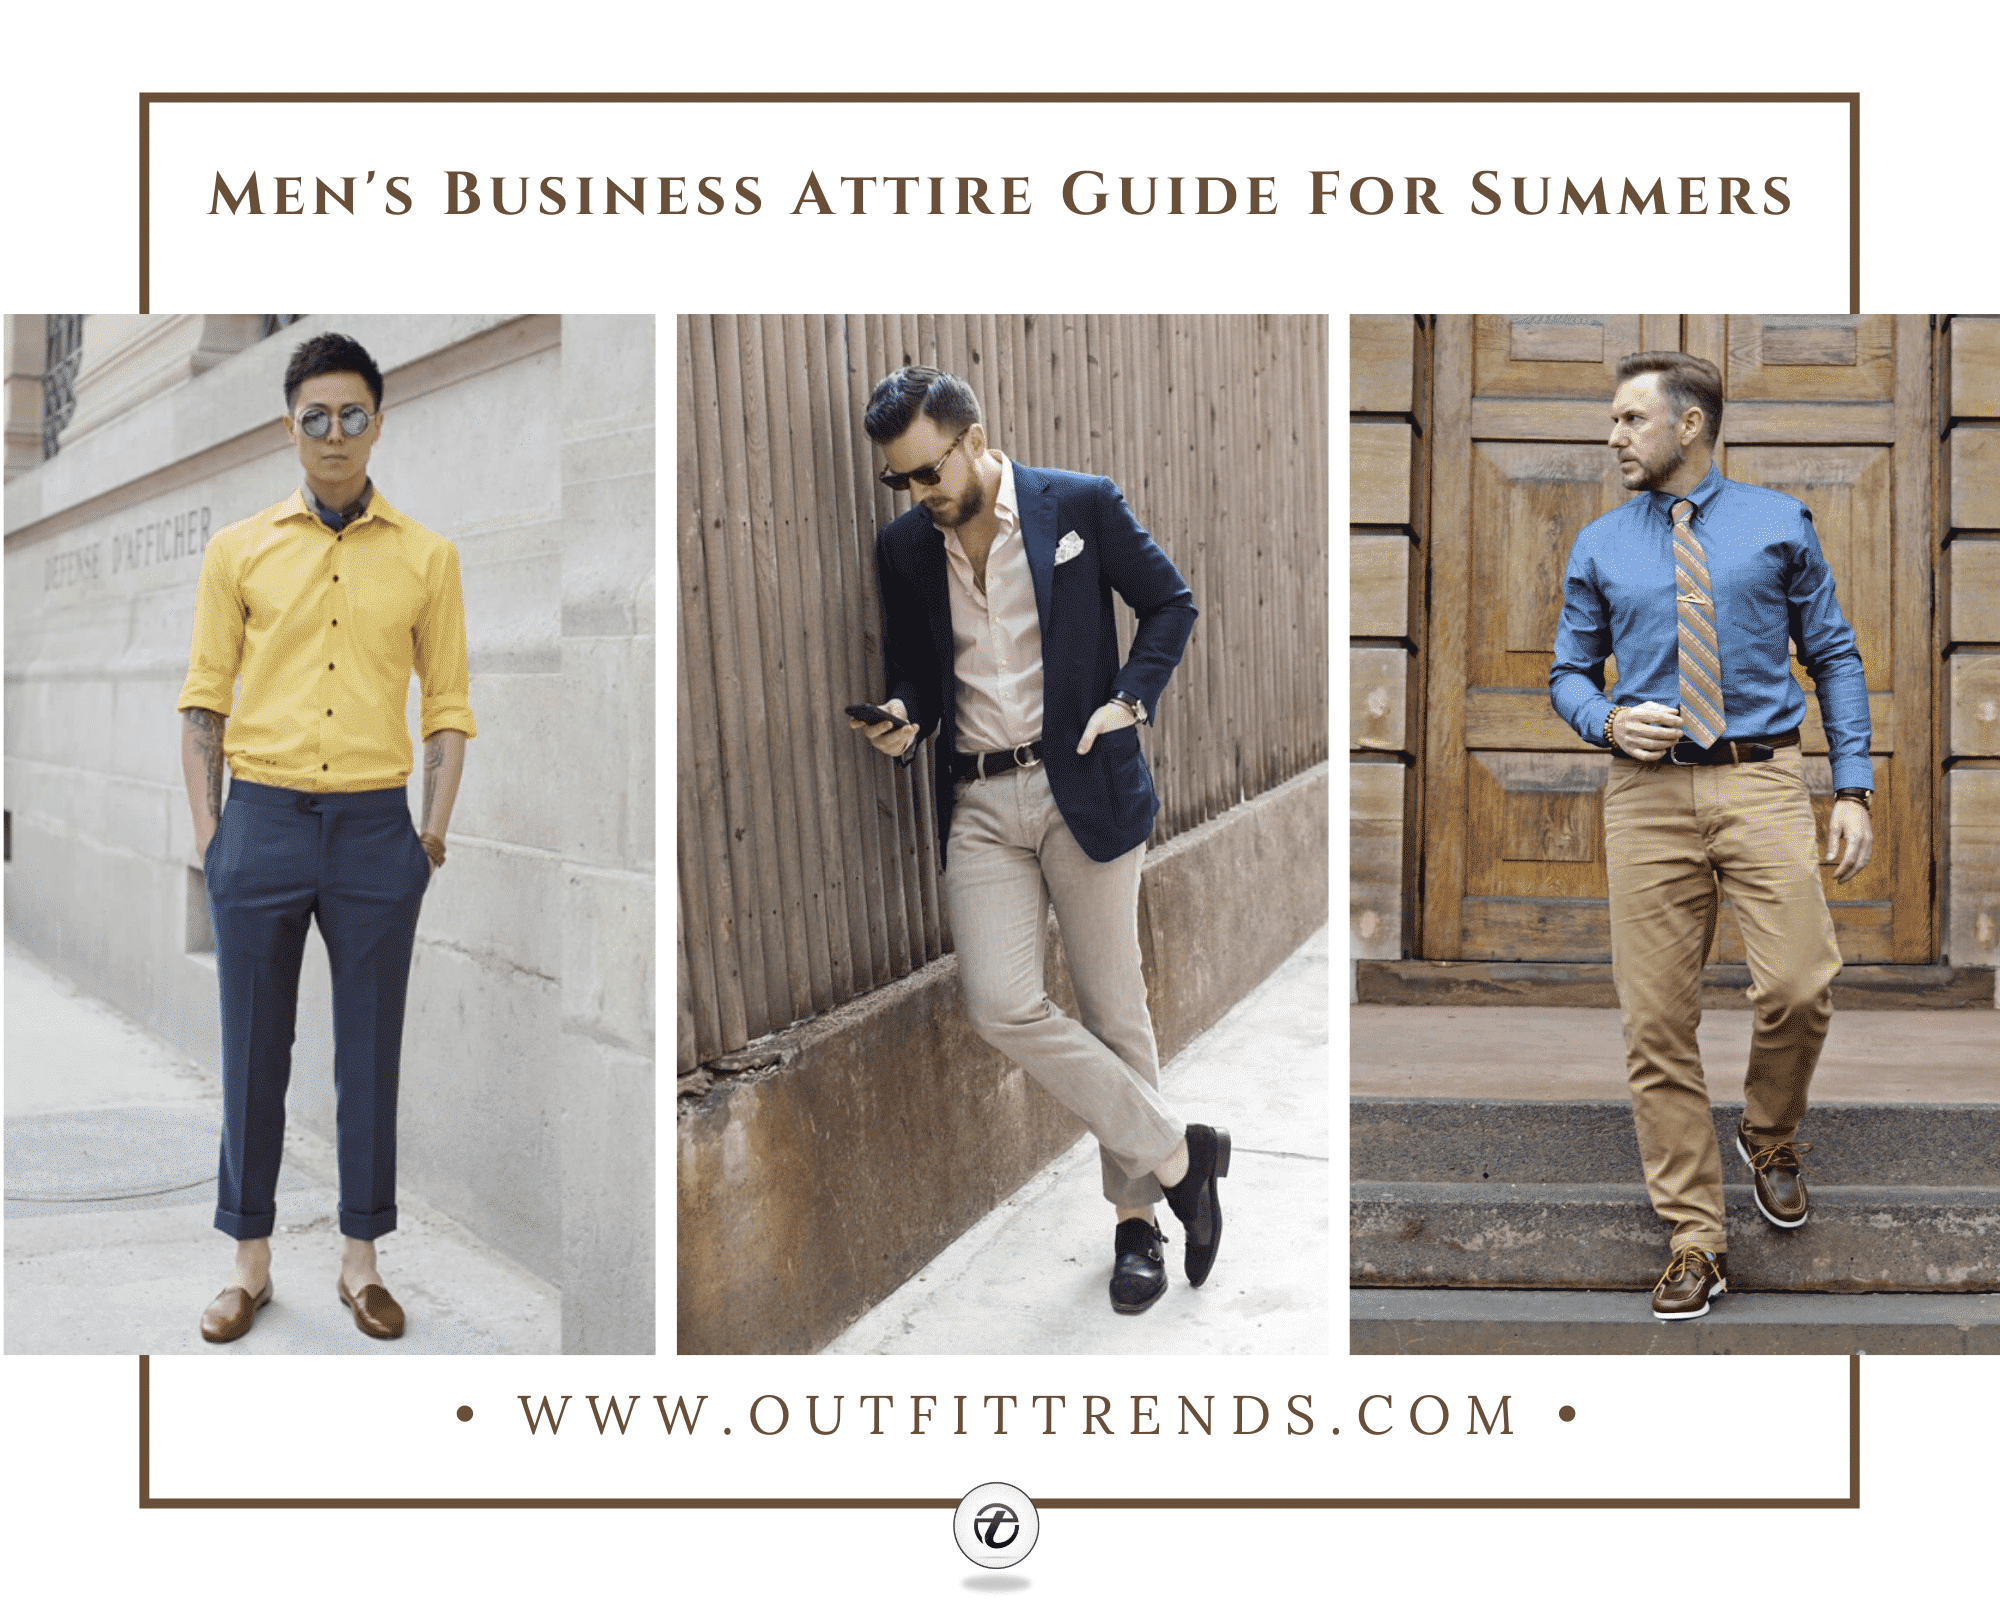 30 Best Summer Business Attire Ideas for Men To Try In 2021